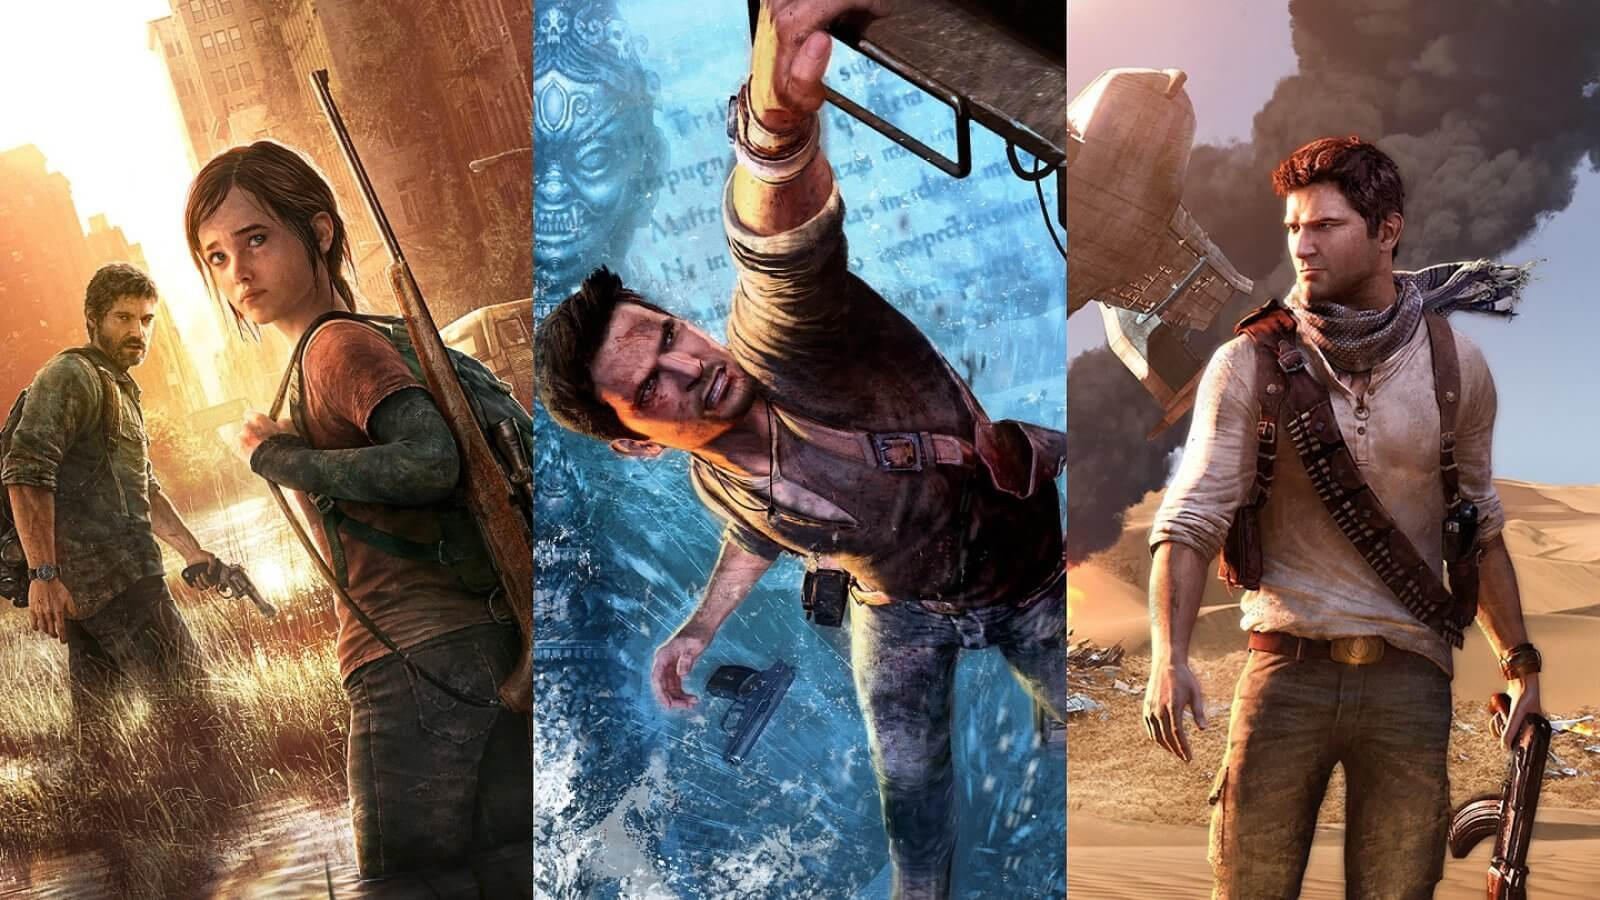 Naughty Dog is taking Uncharted and The Last Of Us multiplayer servers for PS3 offline